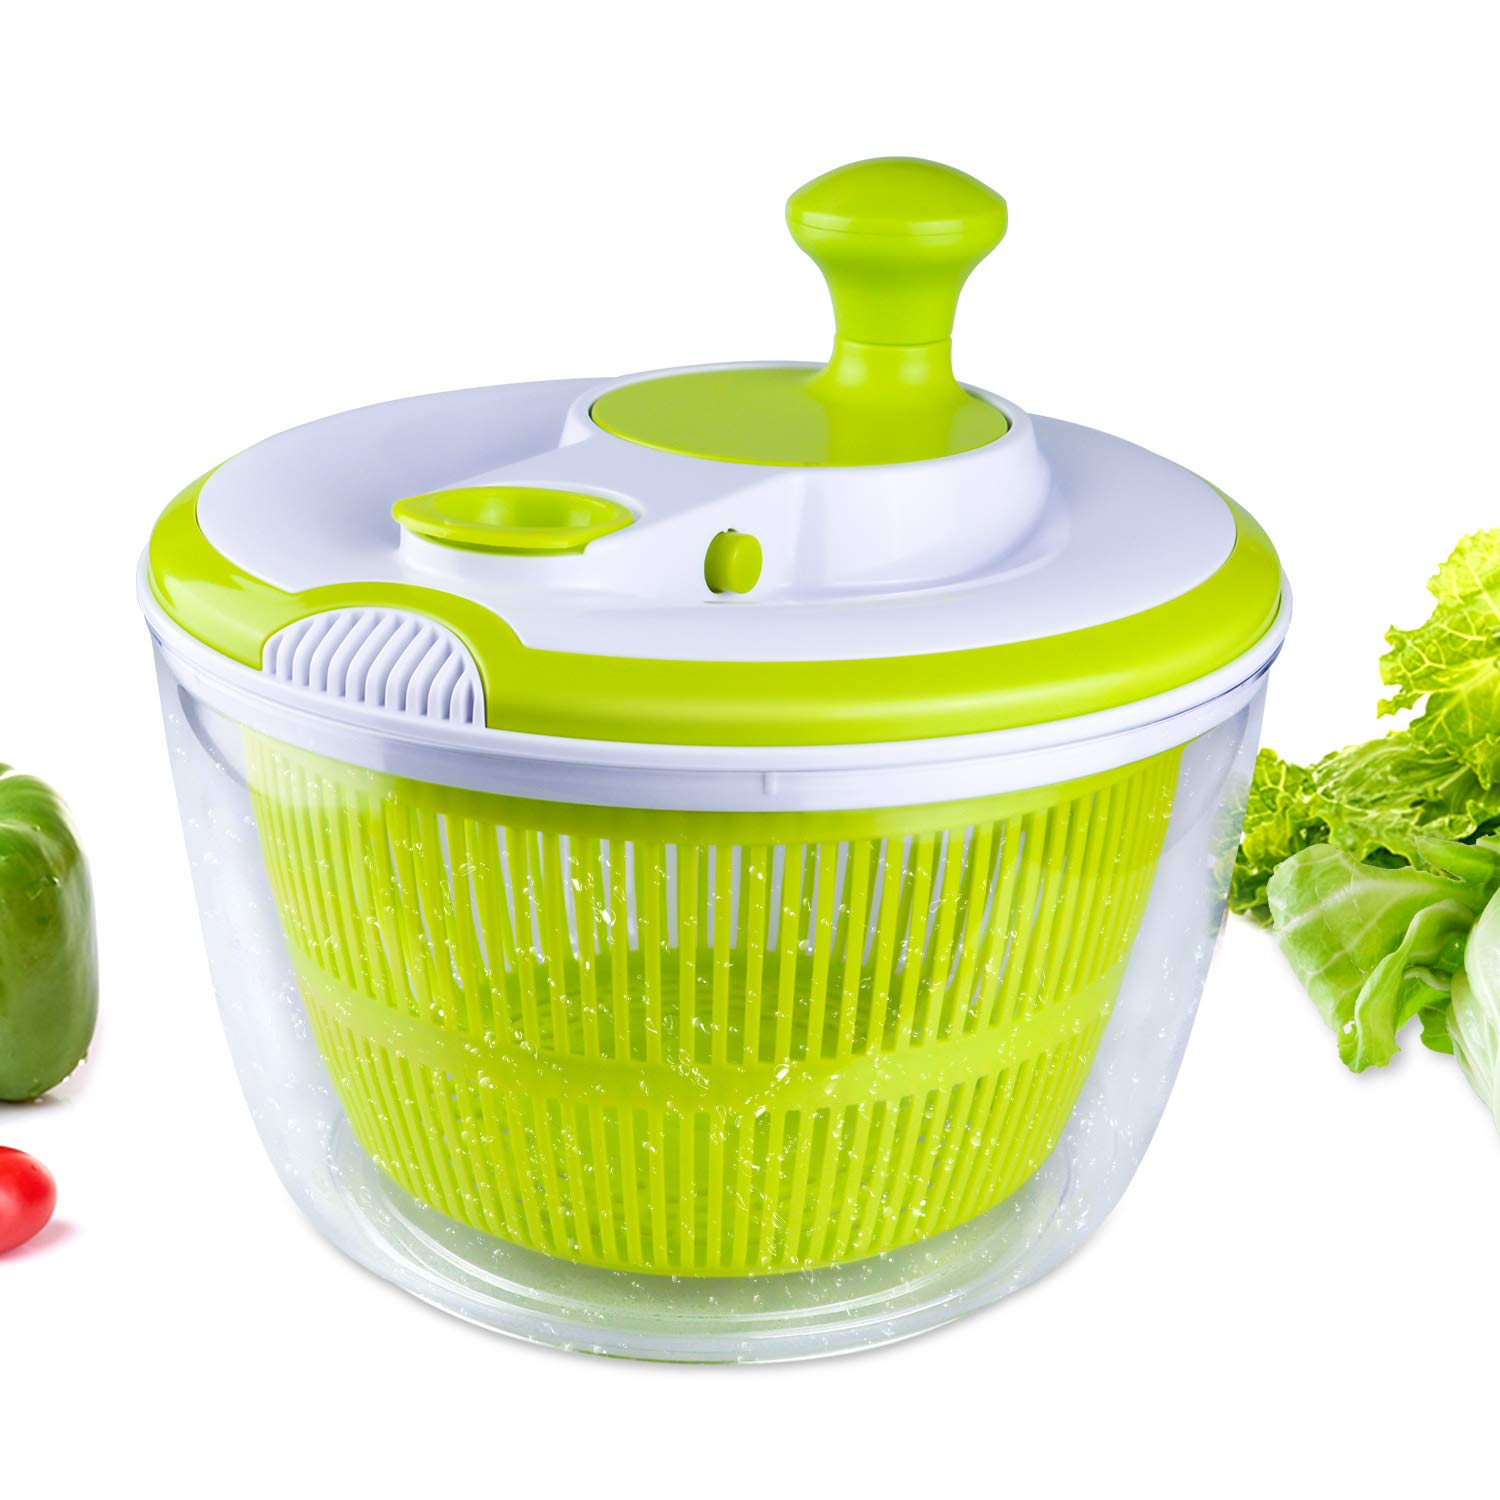 5 Quarts Salad Spinner BPA Free, Fruit and Vegetable Manual Lettuce Dryer Washer, Large, Clear, Green by WOKELINK